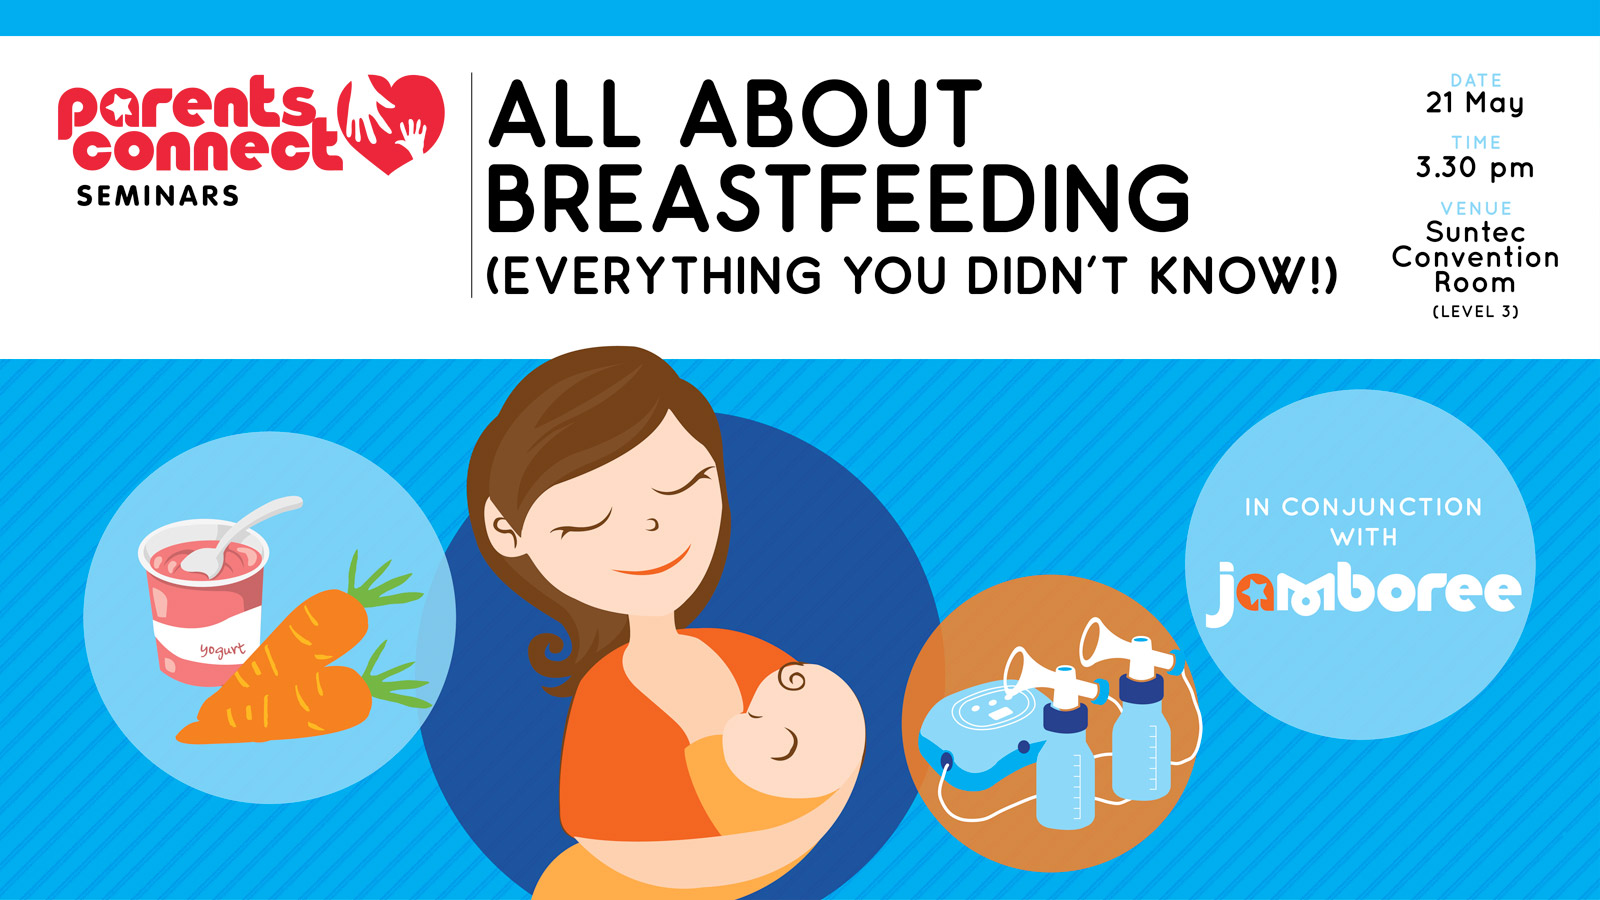 All about Breastfeeding (Everything you didn't know!)